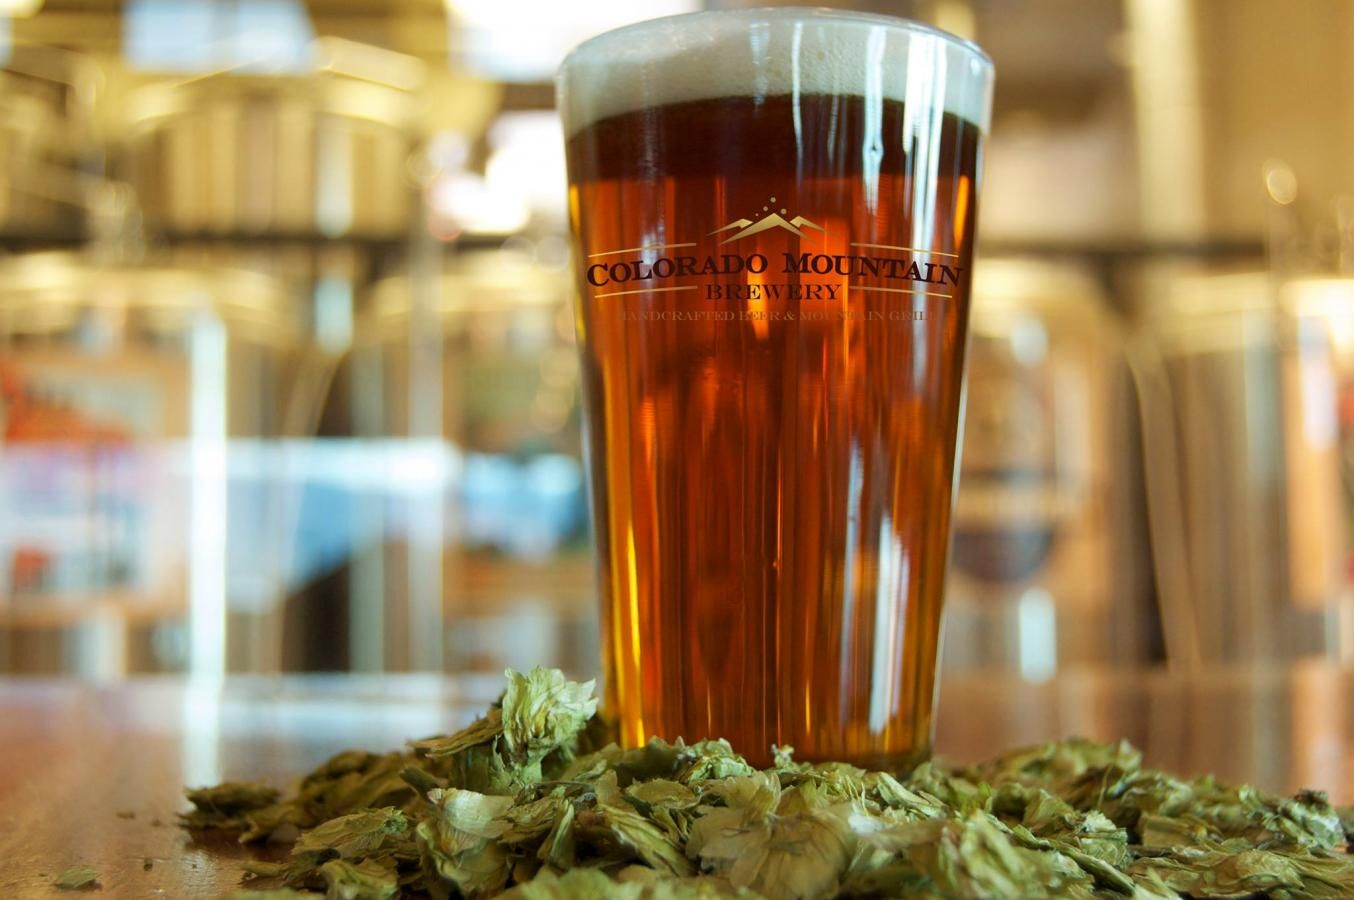 Colorado Mountain Brewery's north location is close to the